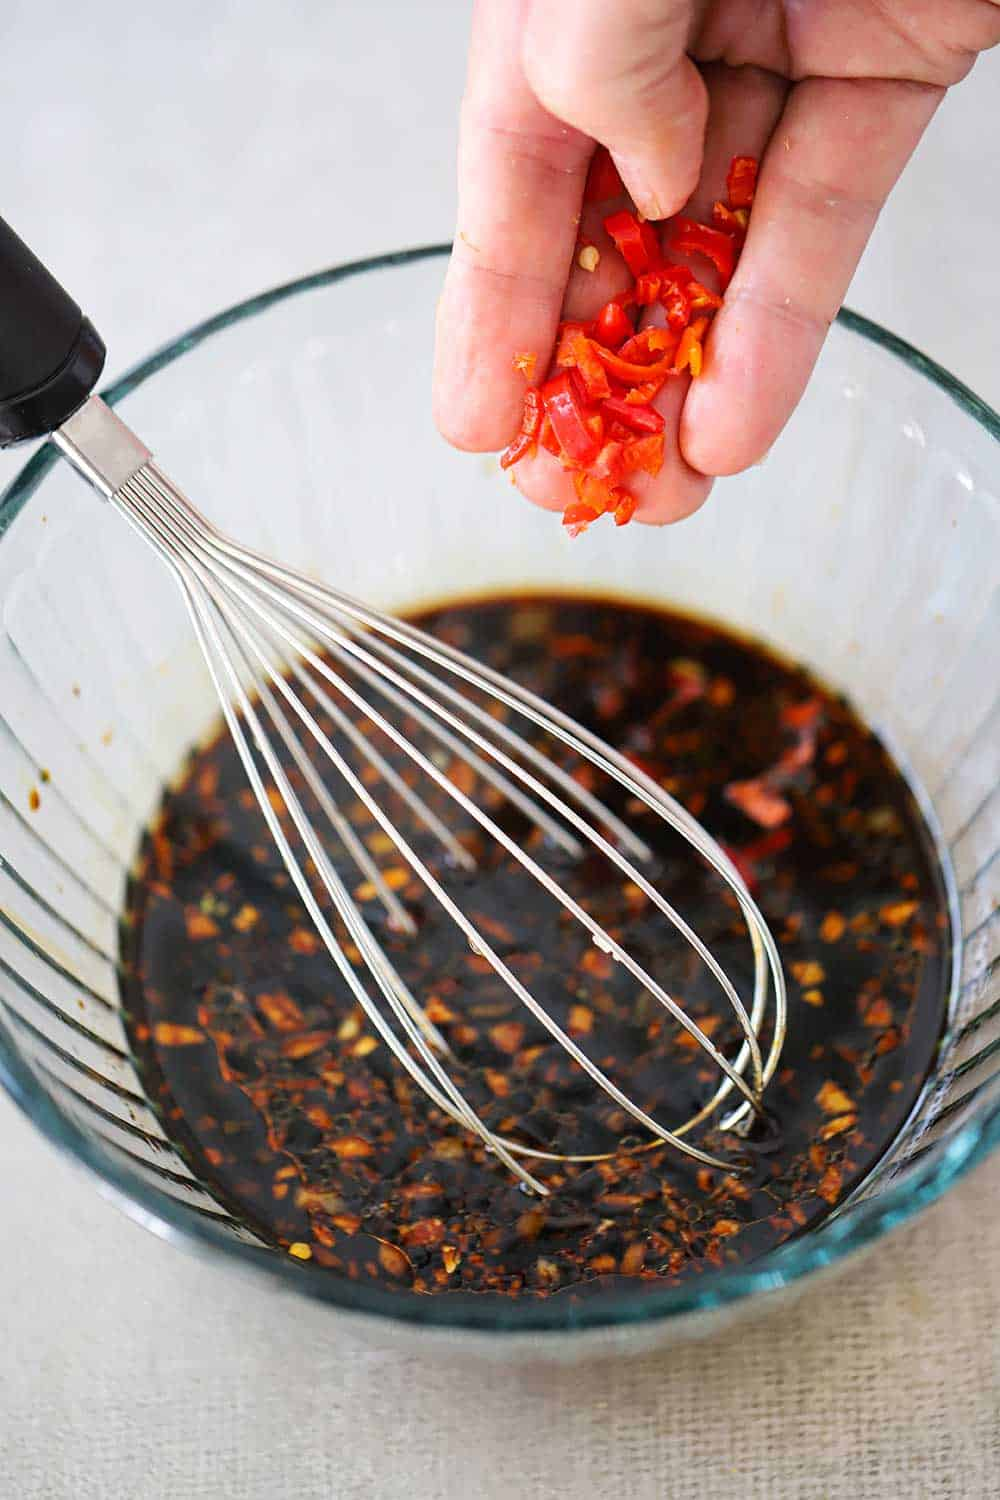 A hand dropping chopped red peppers into a glass bowl of ginger soy dipping sauce.